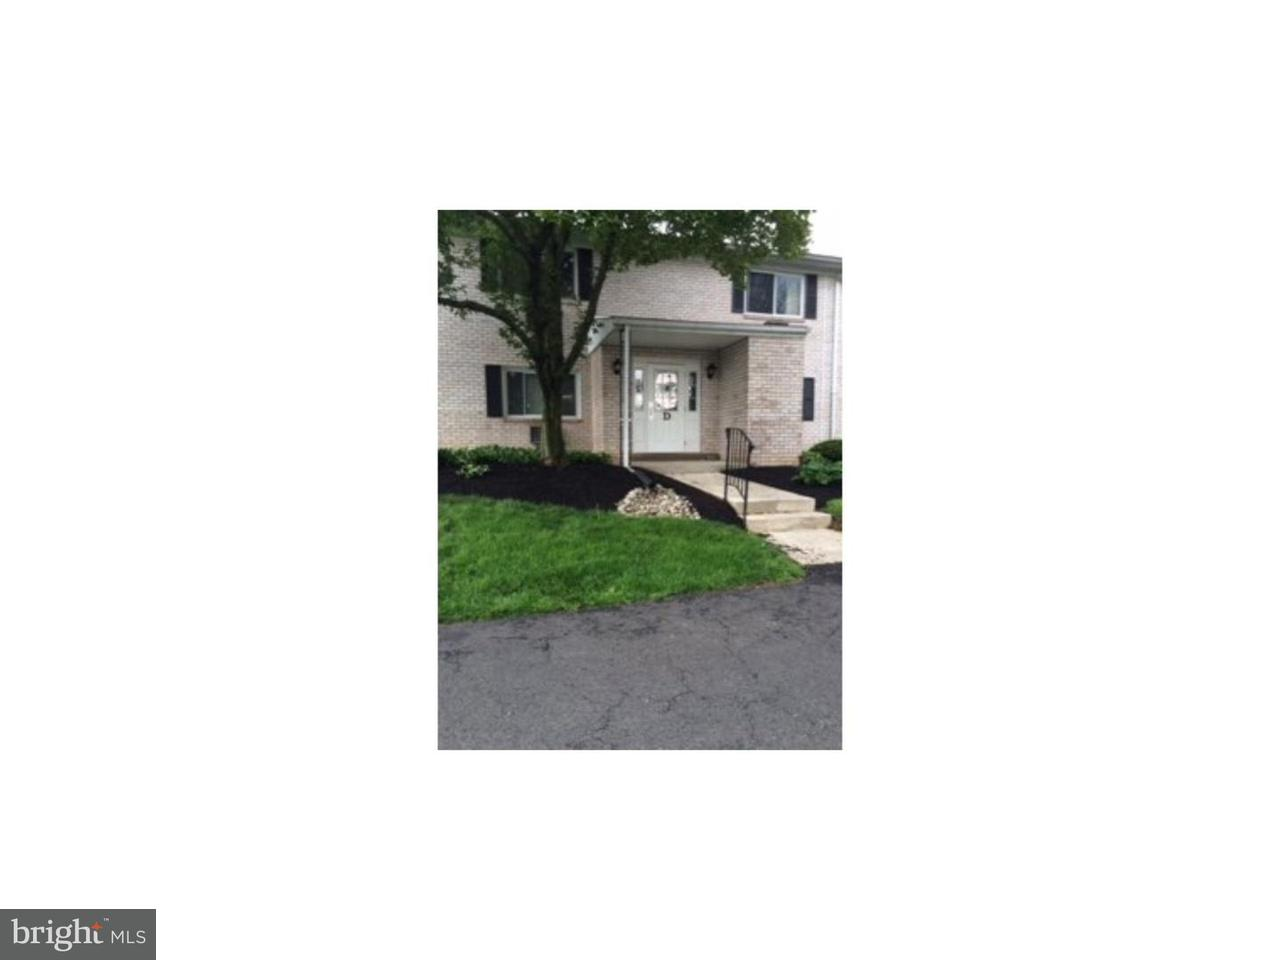 Single Family Home for Rent at 26 PARK AVE #D54 Chalfont, Pennsylvania 18914 United States